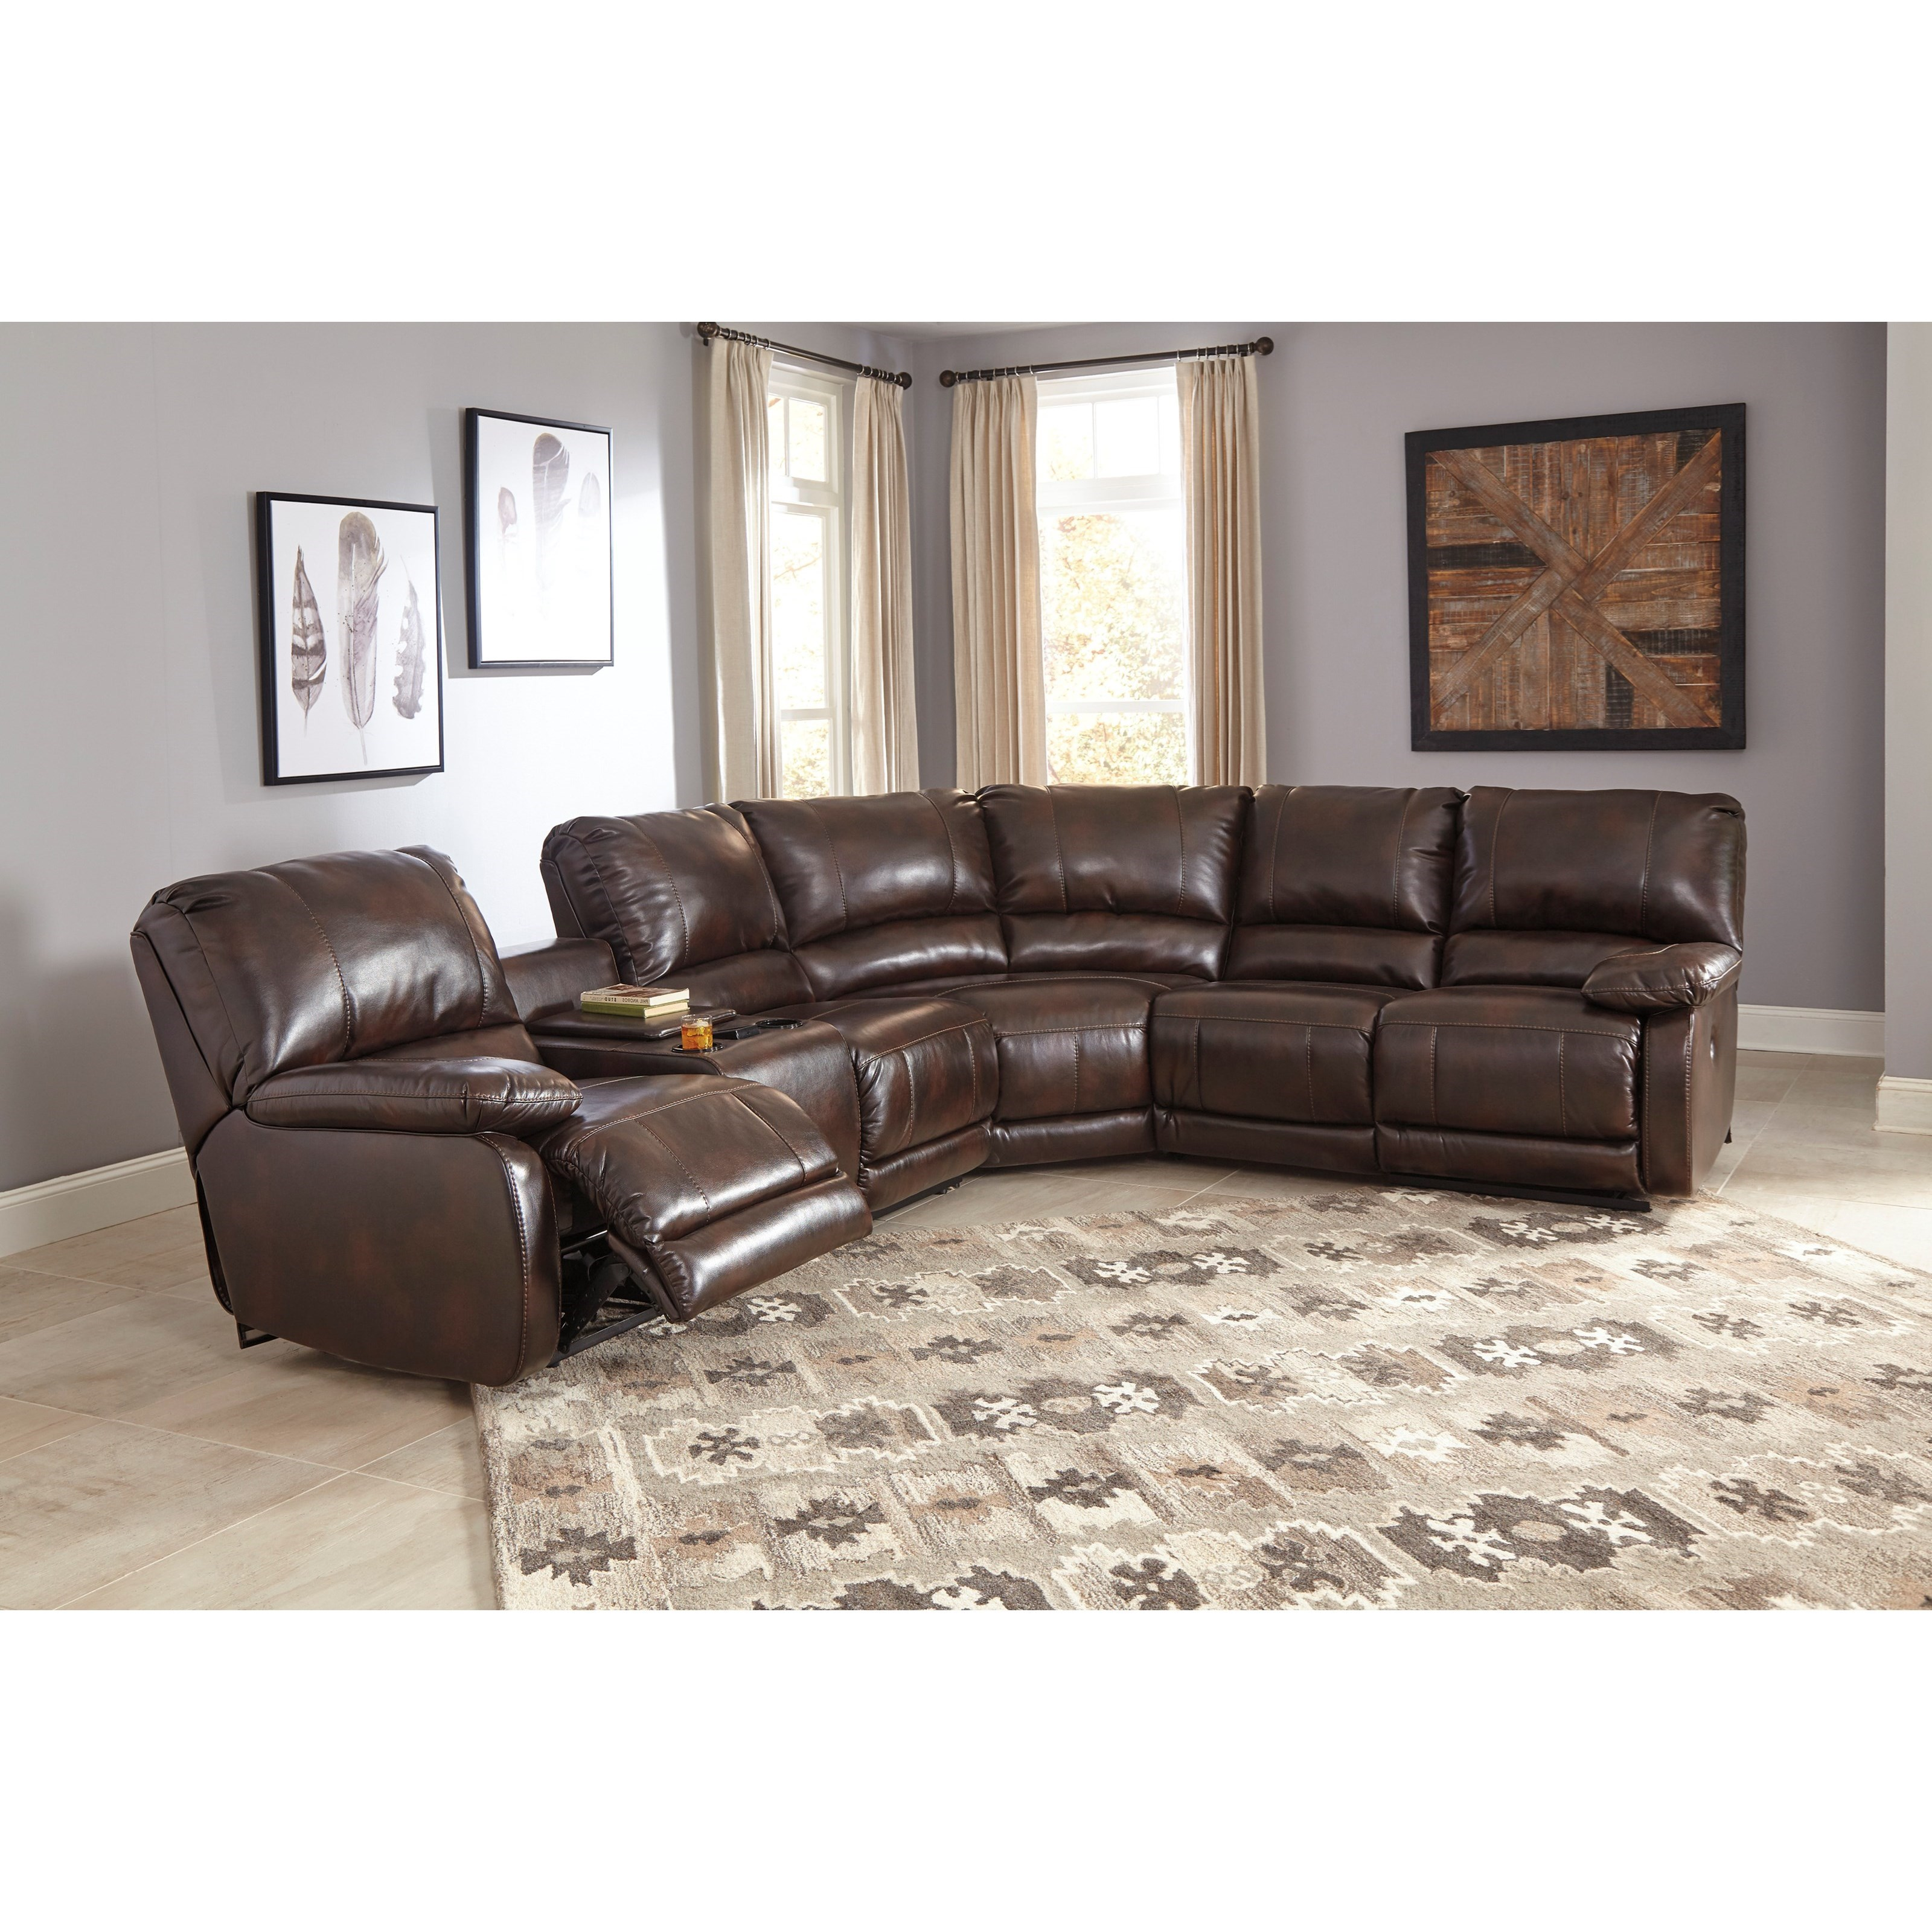 Power Reclining Sectional  sc 1 st  Wolf Furniture & Power Reclining Sectional with Massage Heat and Cup Holder ... islam-shia.org